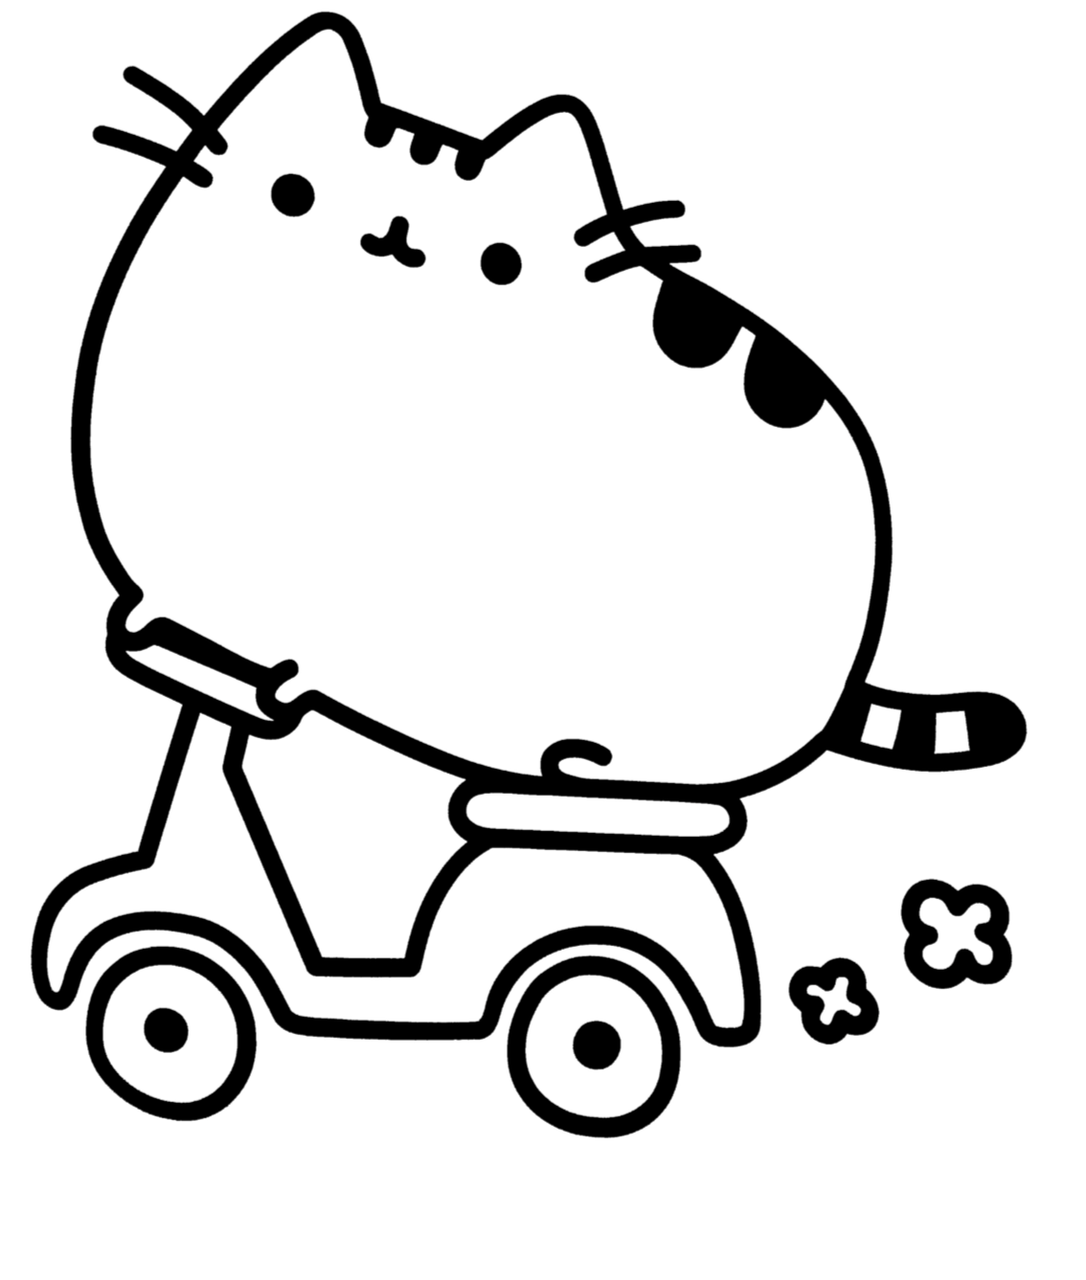 Printable Cute Dogs And Cats Coloring Pages Google Search Cat Decal Cat Decal Stickers Cat Coloring Page